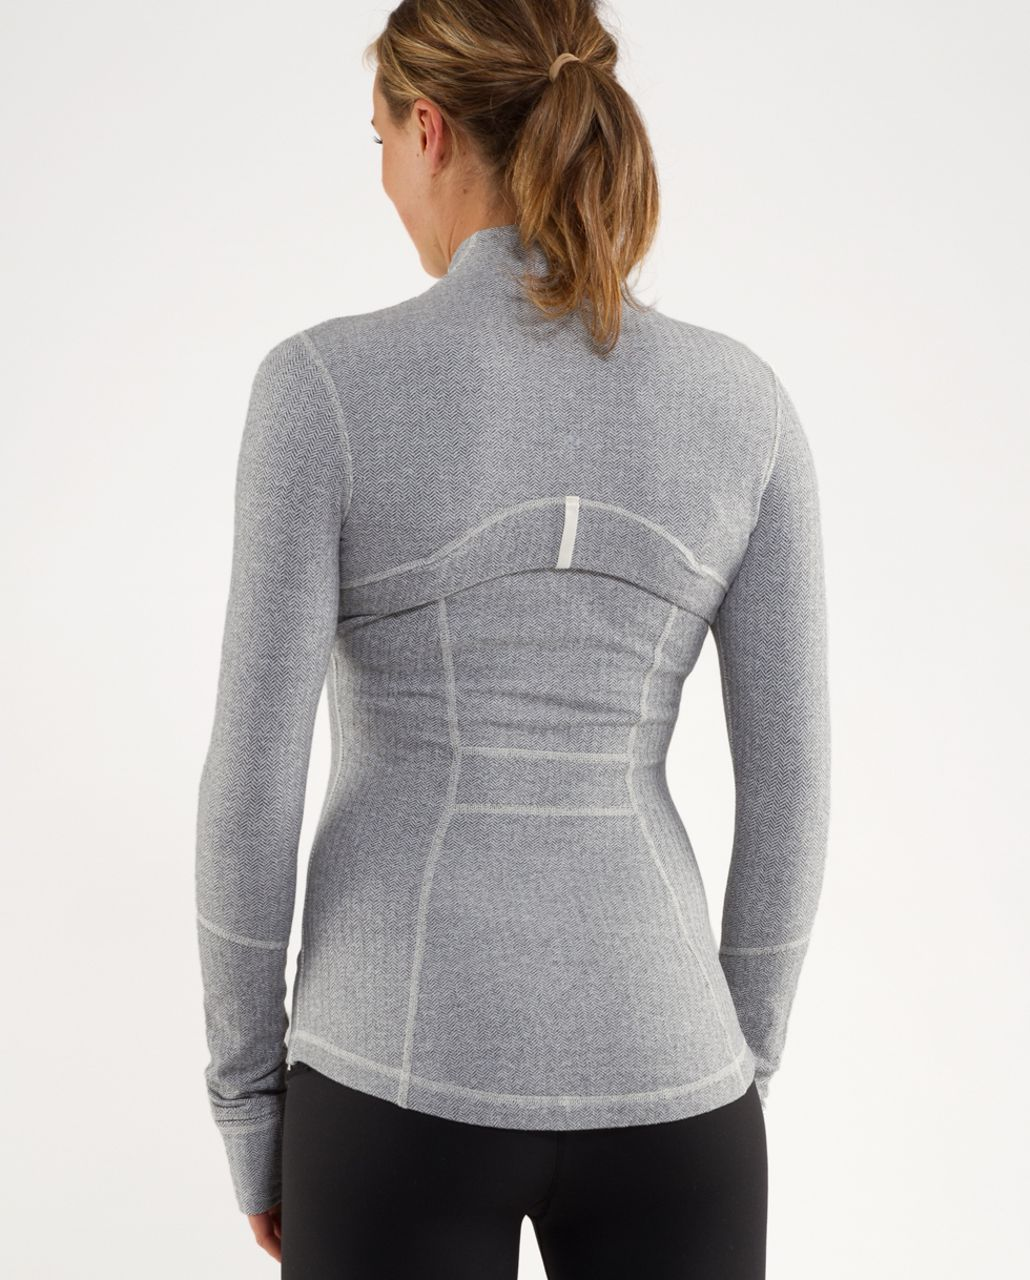 Lululemon Define Jacket *Herringbone - Ghost Heathered Coal Herringbone